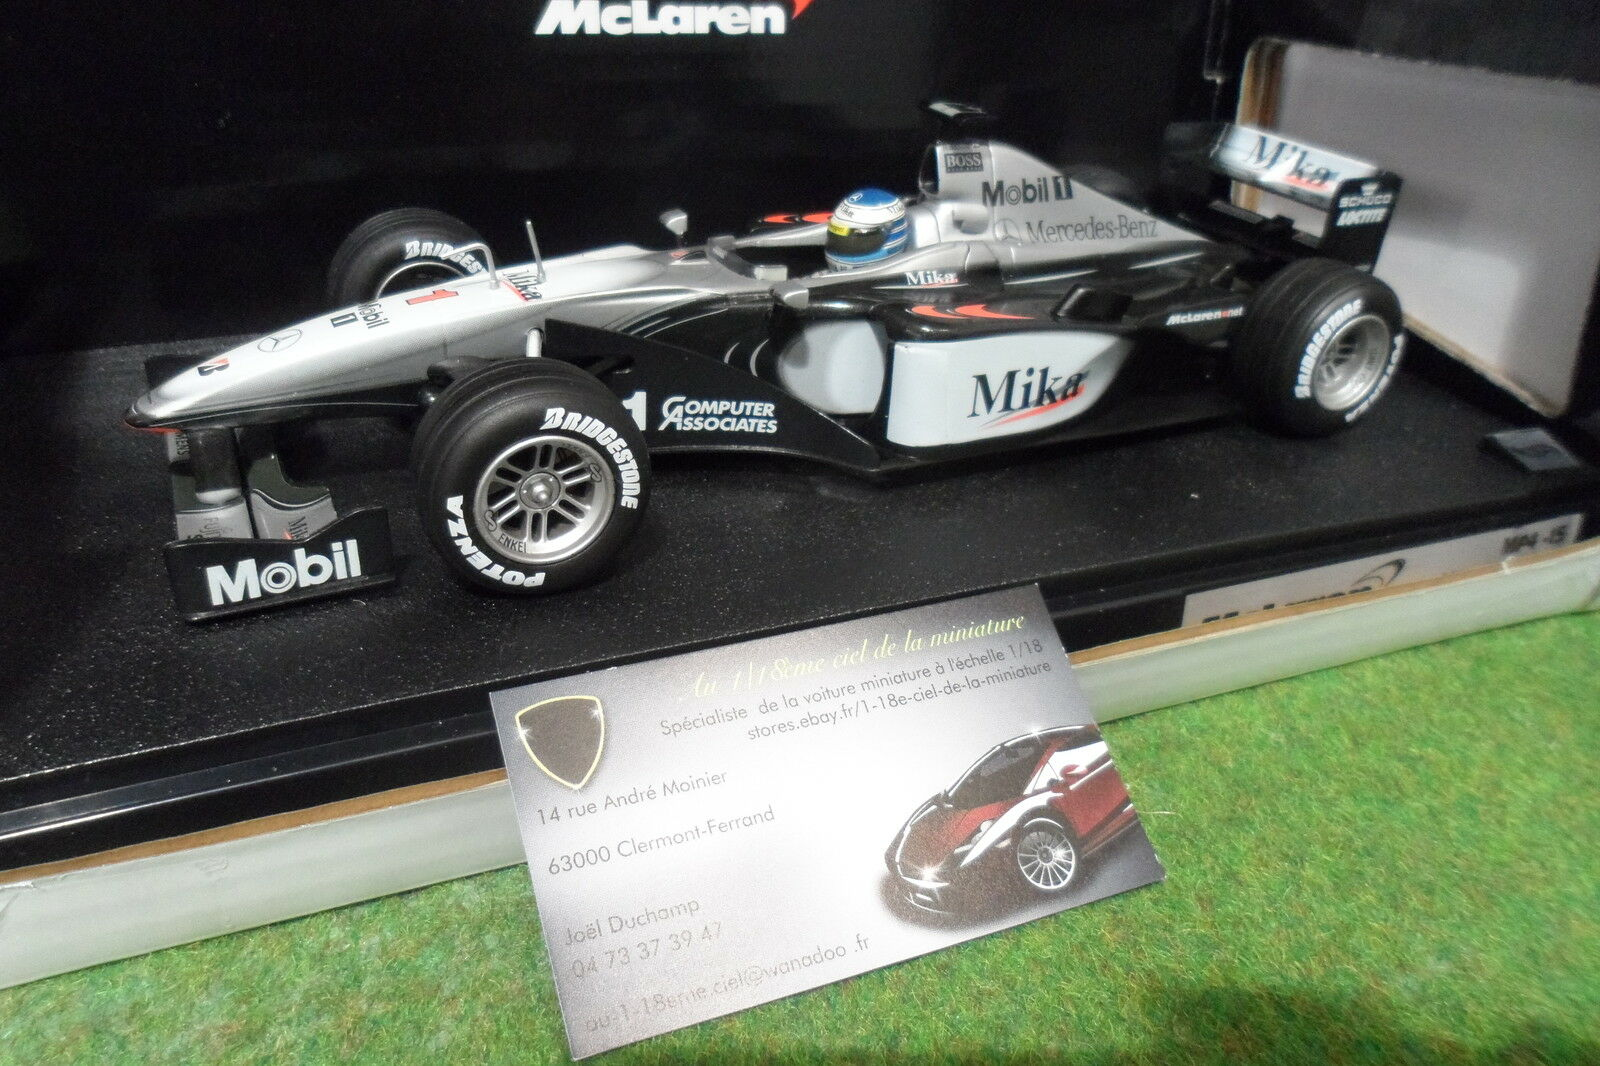 F1 McLAREN MP4-15  1 HÄKKINEN 2000 au 1 18 HOT WHEELS 26739 formule 1 voiture